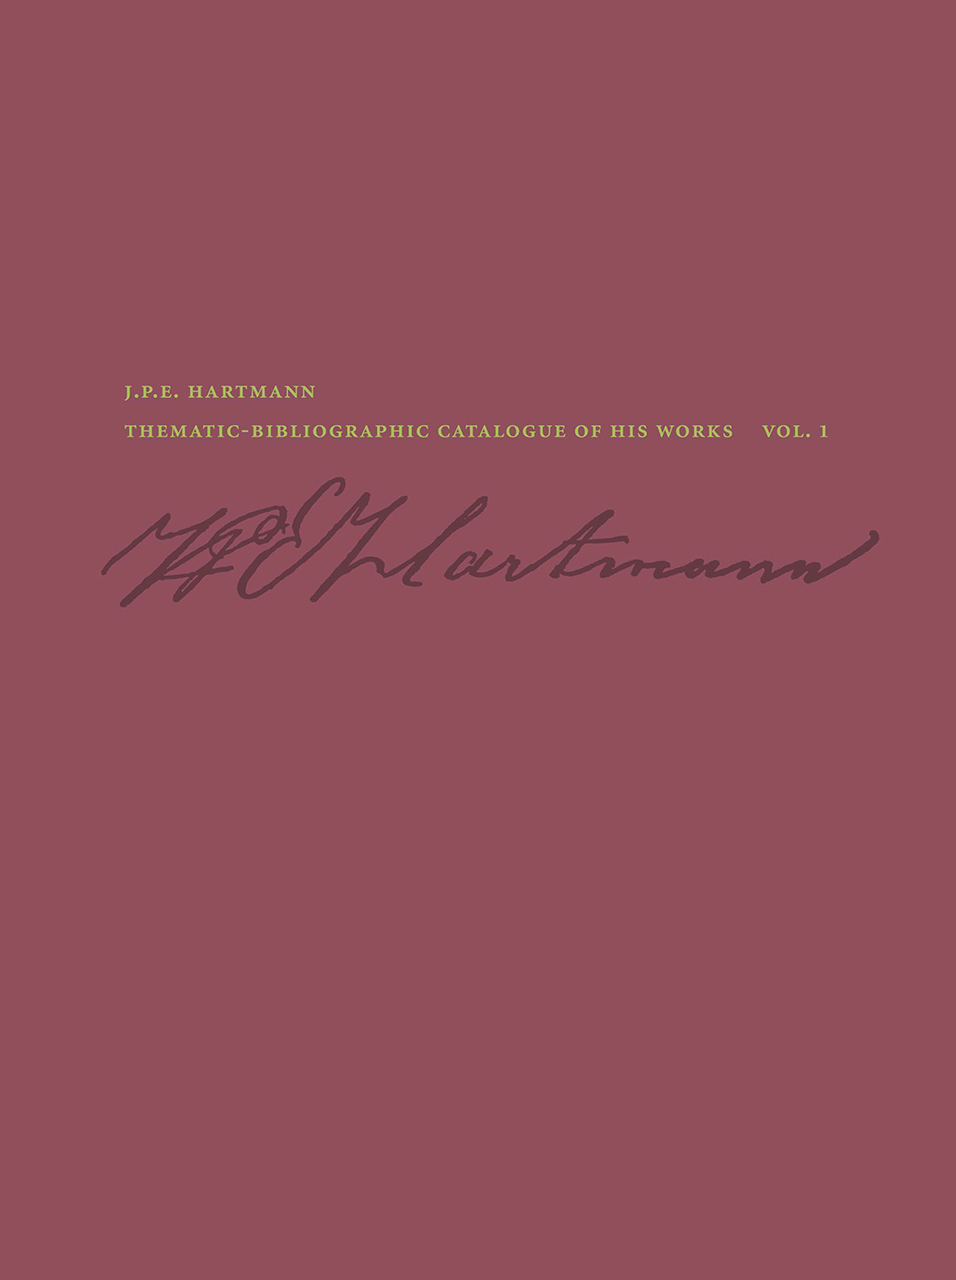 J. P. E. Hartmann: Thematic-Bibliographic Catalogue of his Works